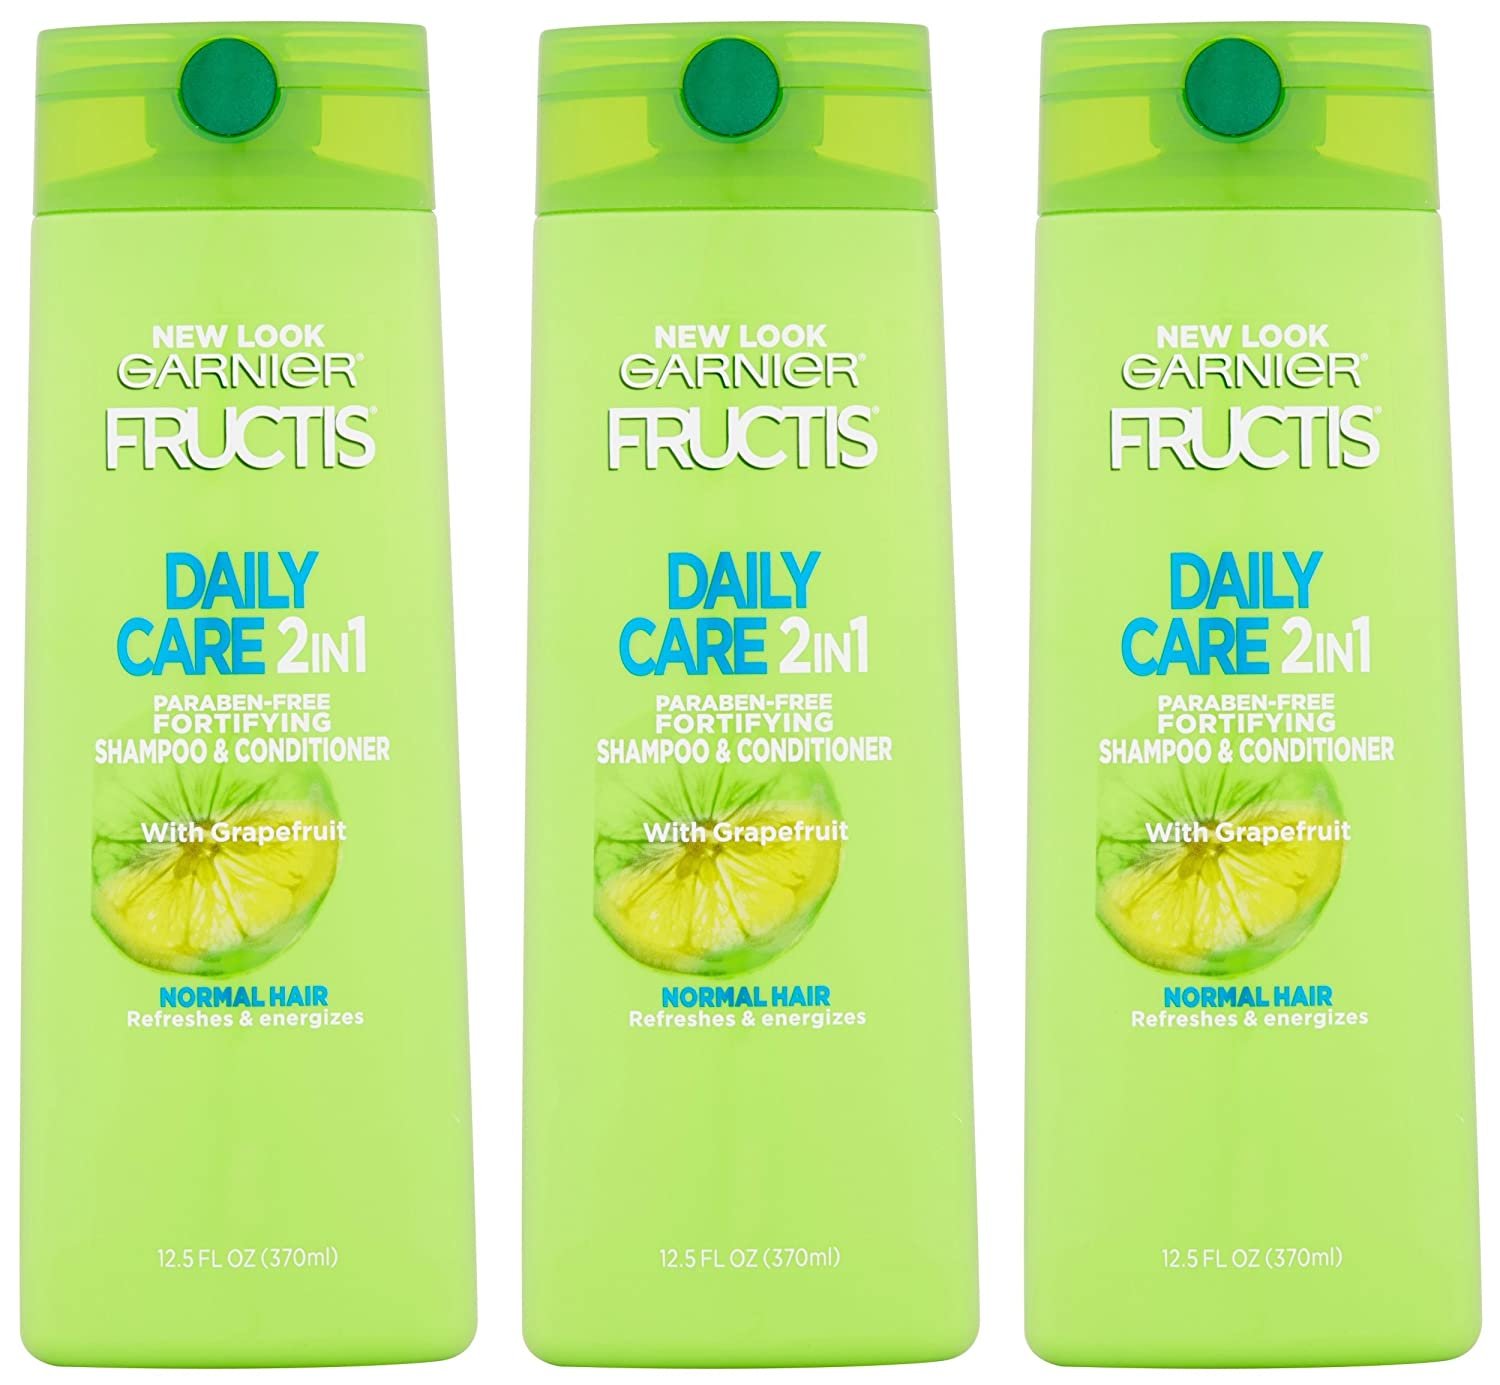 Garnier Fructis Haircare - Daily Care - 2 in 1 Shampoo & Conditioner - With Grapefruit - Net Wt. 12.5 FL OZ (370 mL) Per Bottle - Pack of 3 Bottles